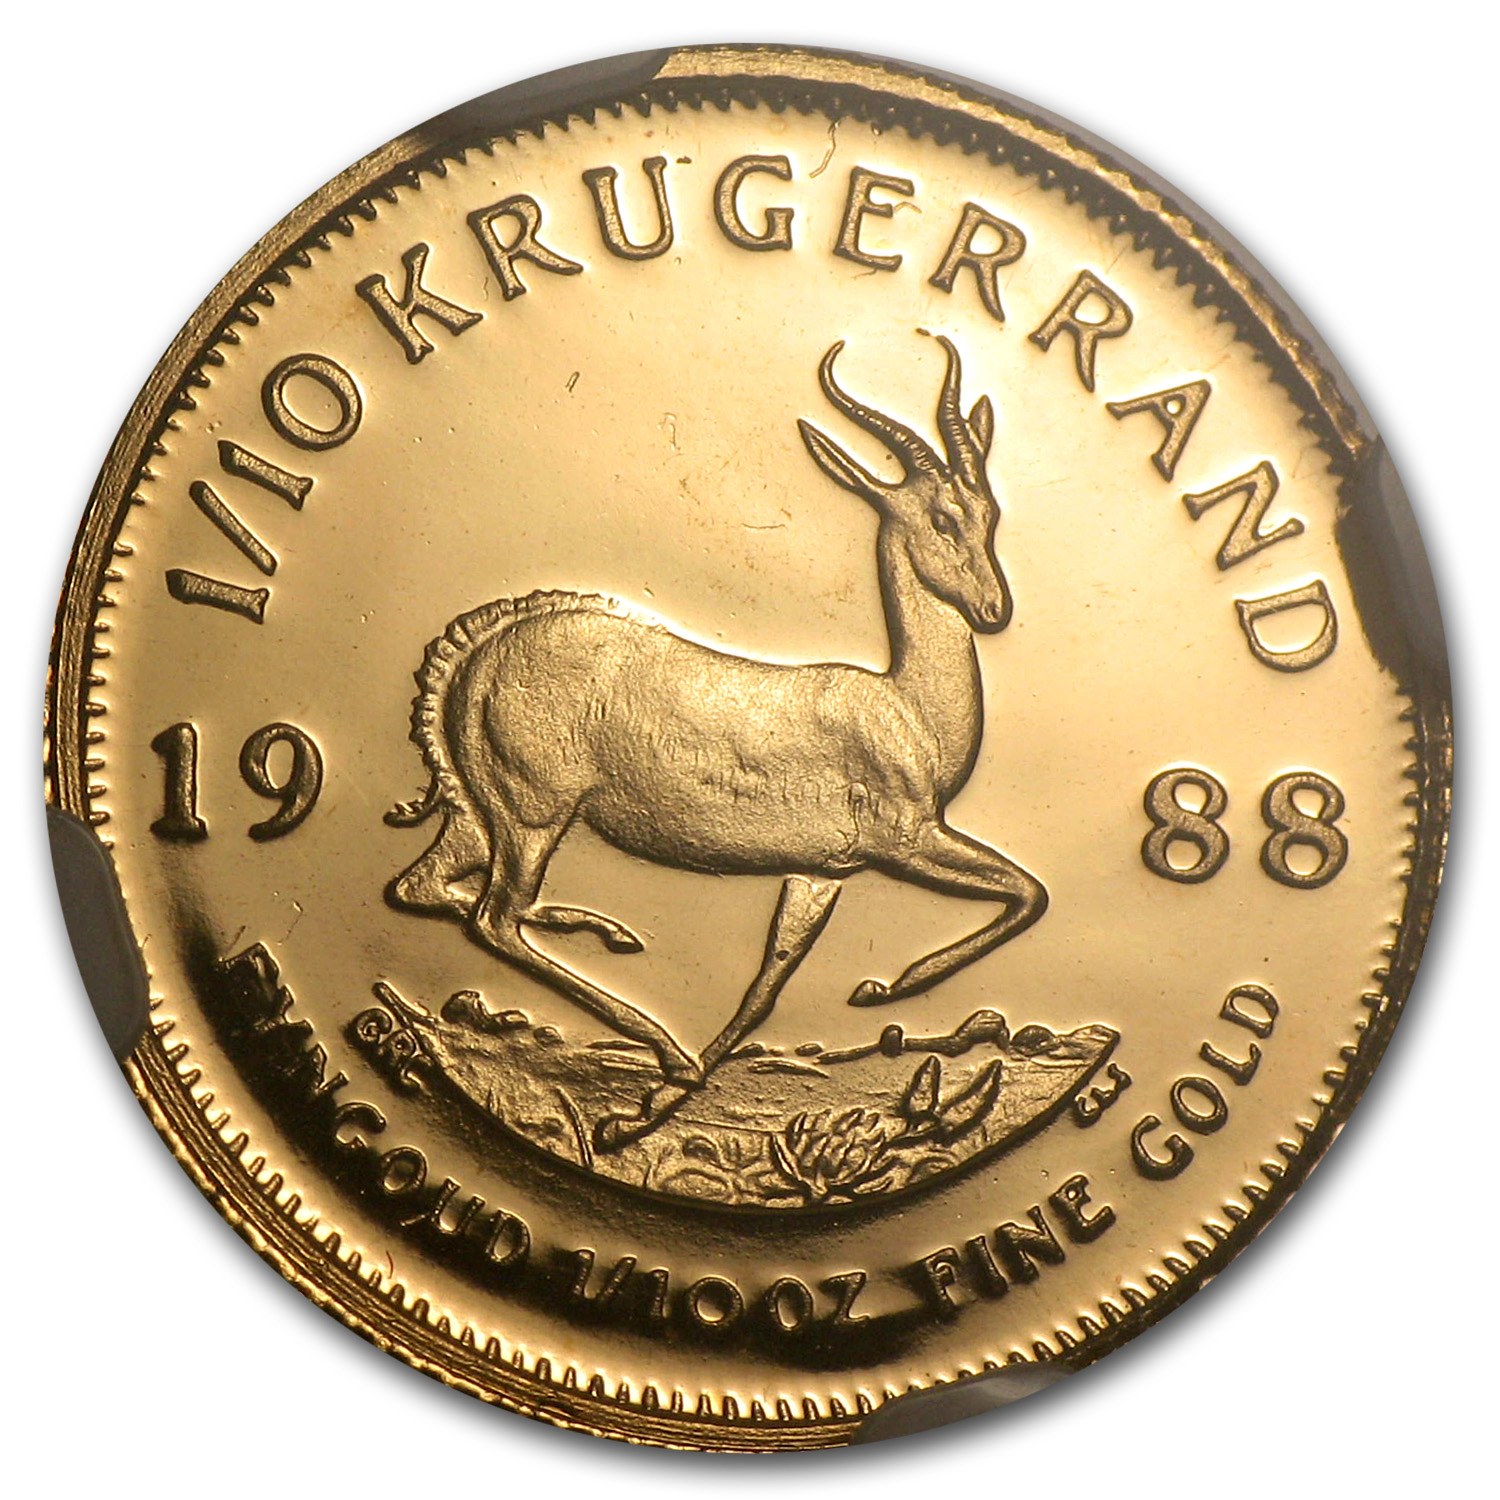 1988 South Africa 1/10 oz Gold Krugerrand PF-69 NGC (GRC)